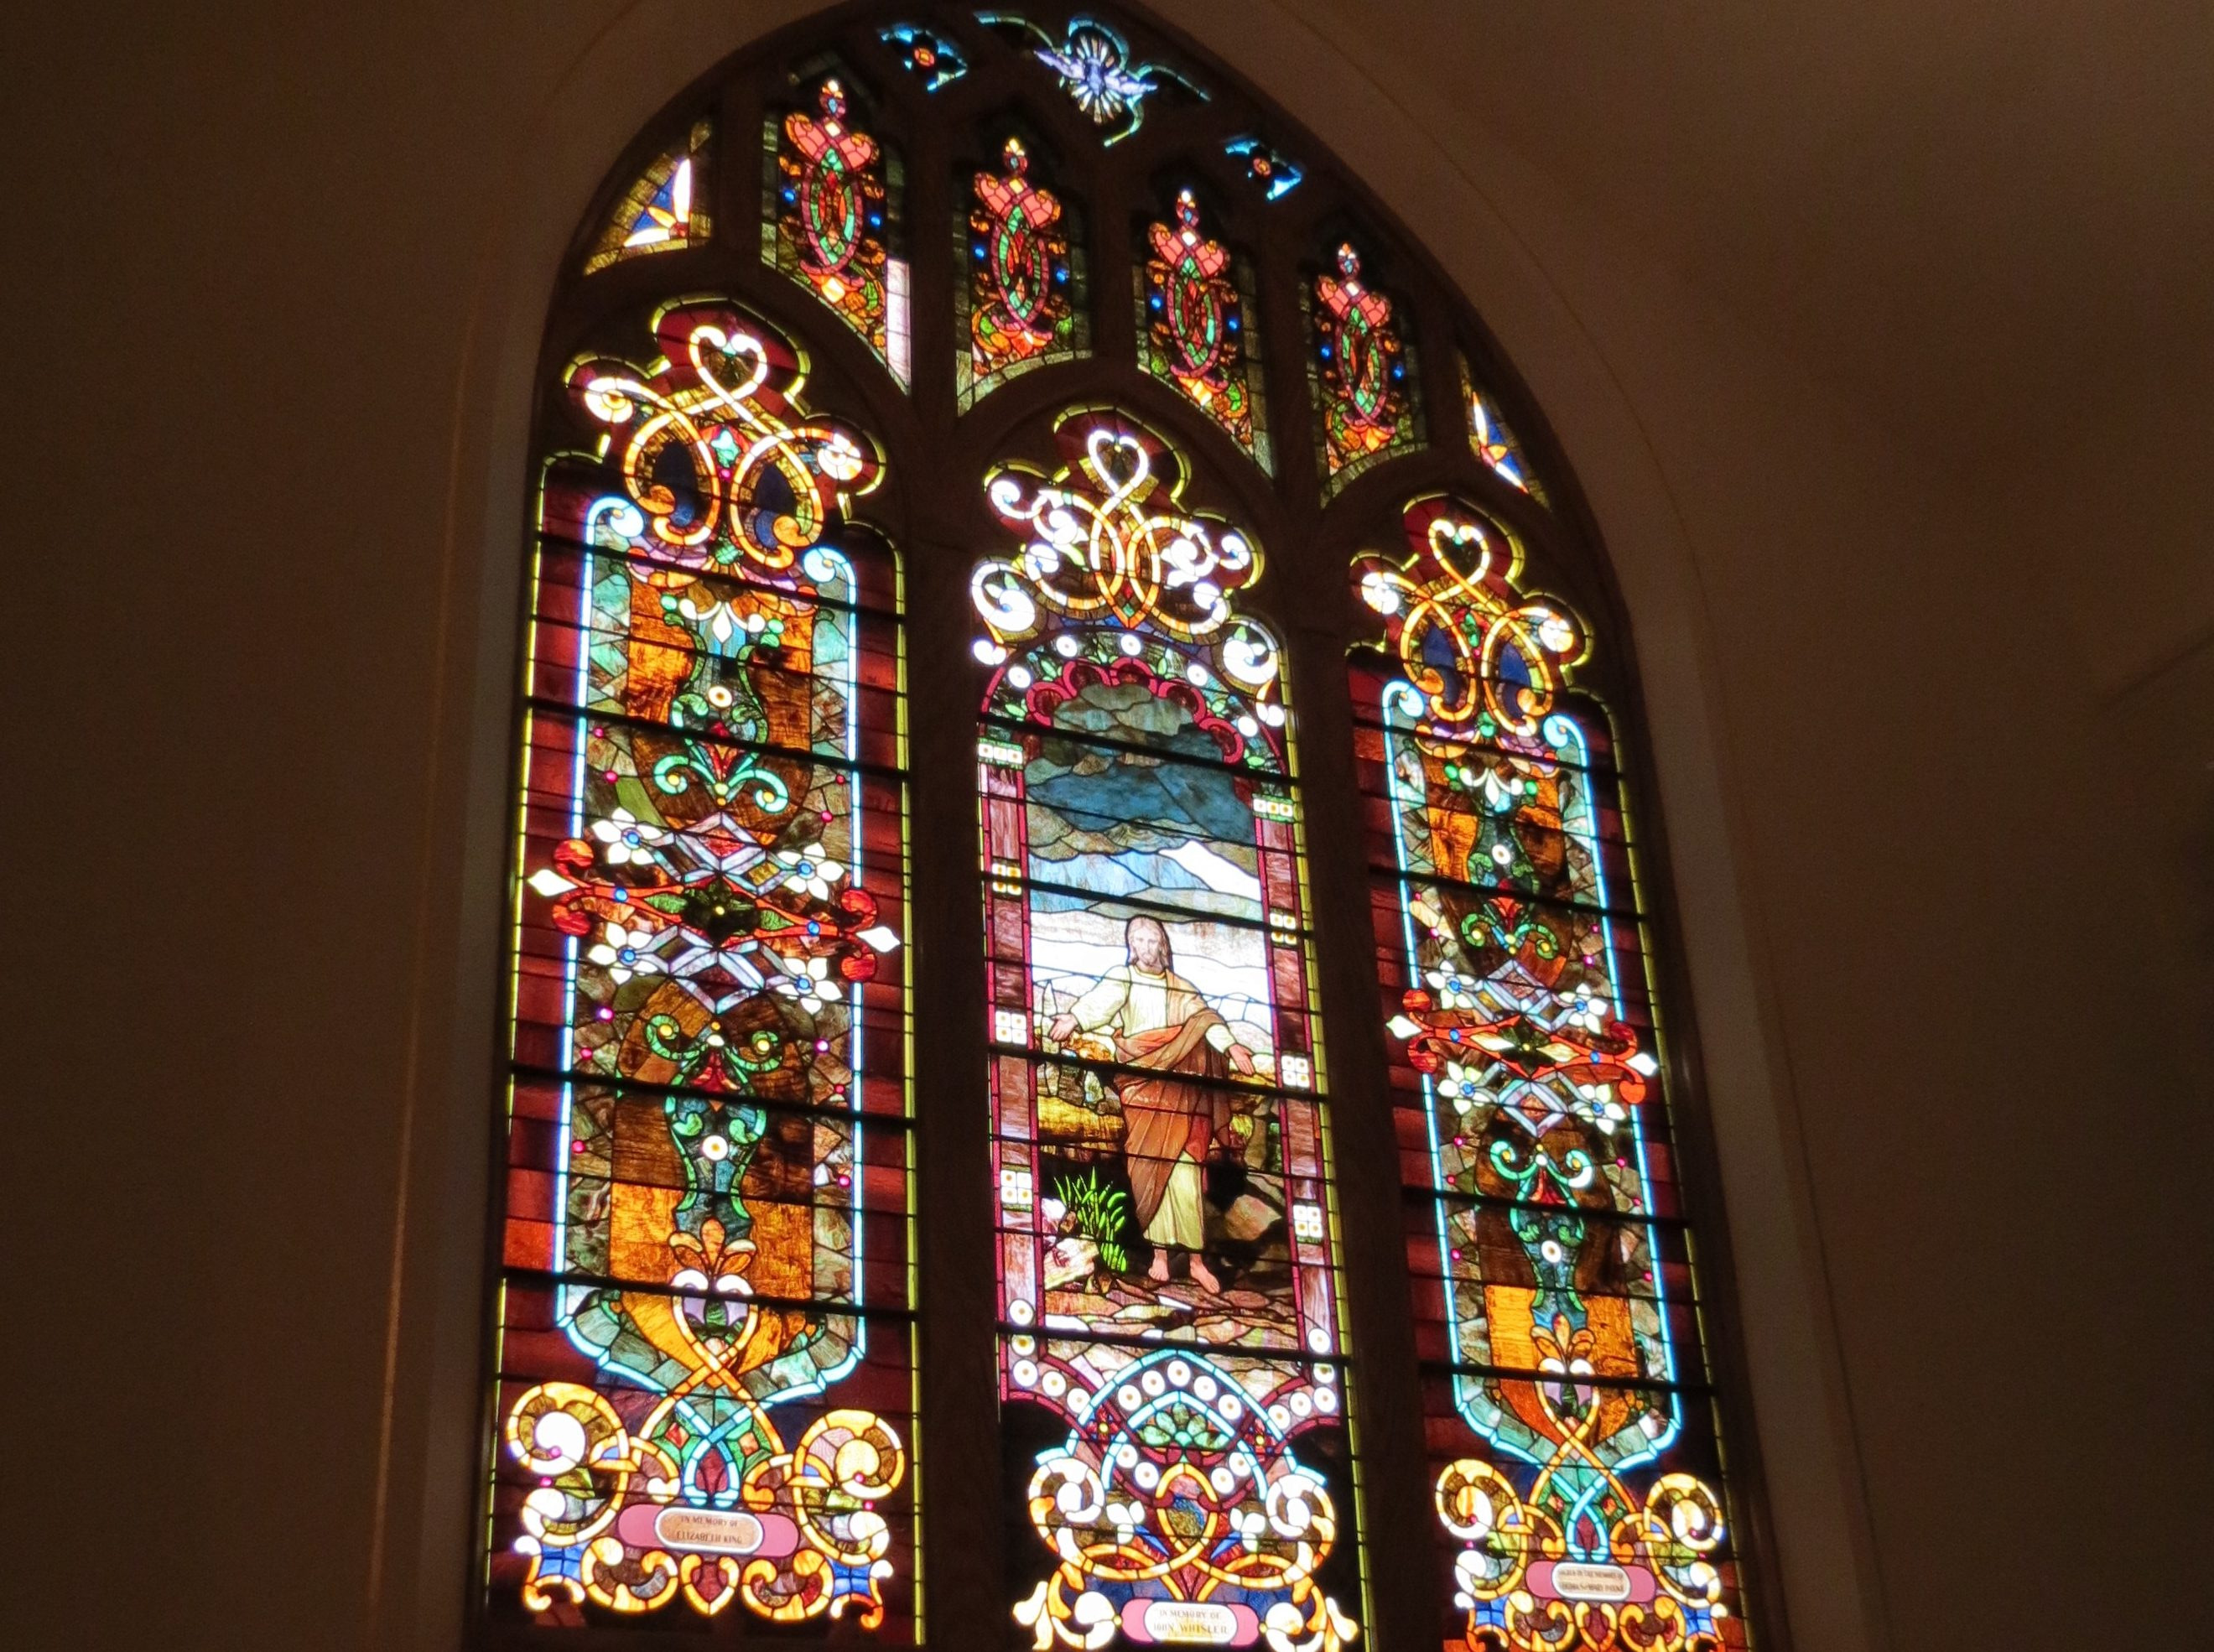 church glass revival historic stained restoration by mccully art glass & restorations lafayette indiana